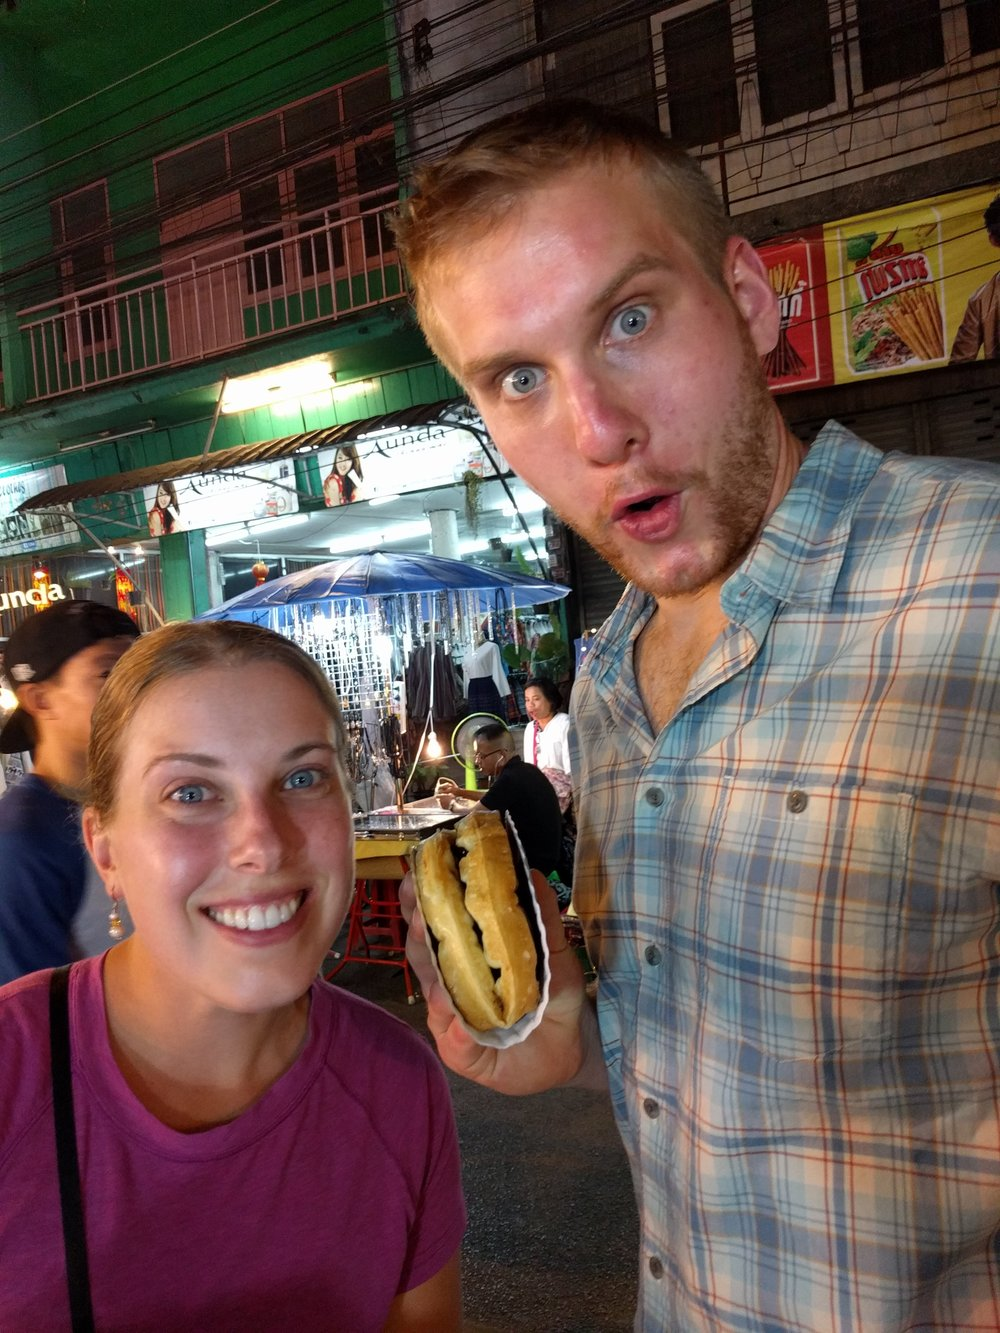 Our last purchase of the night was a giant Belgium waffled filled with chocolate sauce. It made up for the crickets.